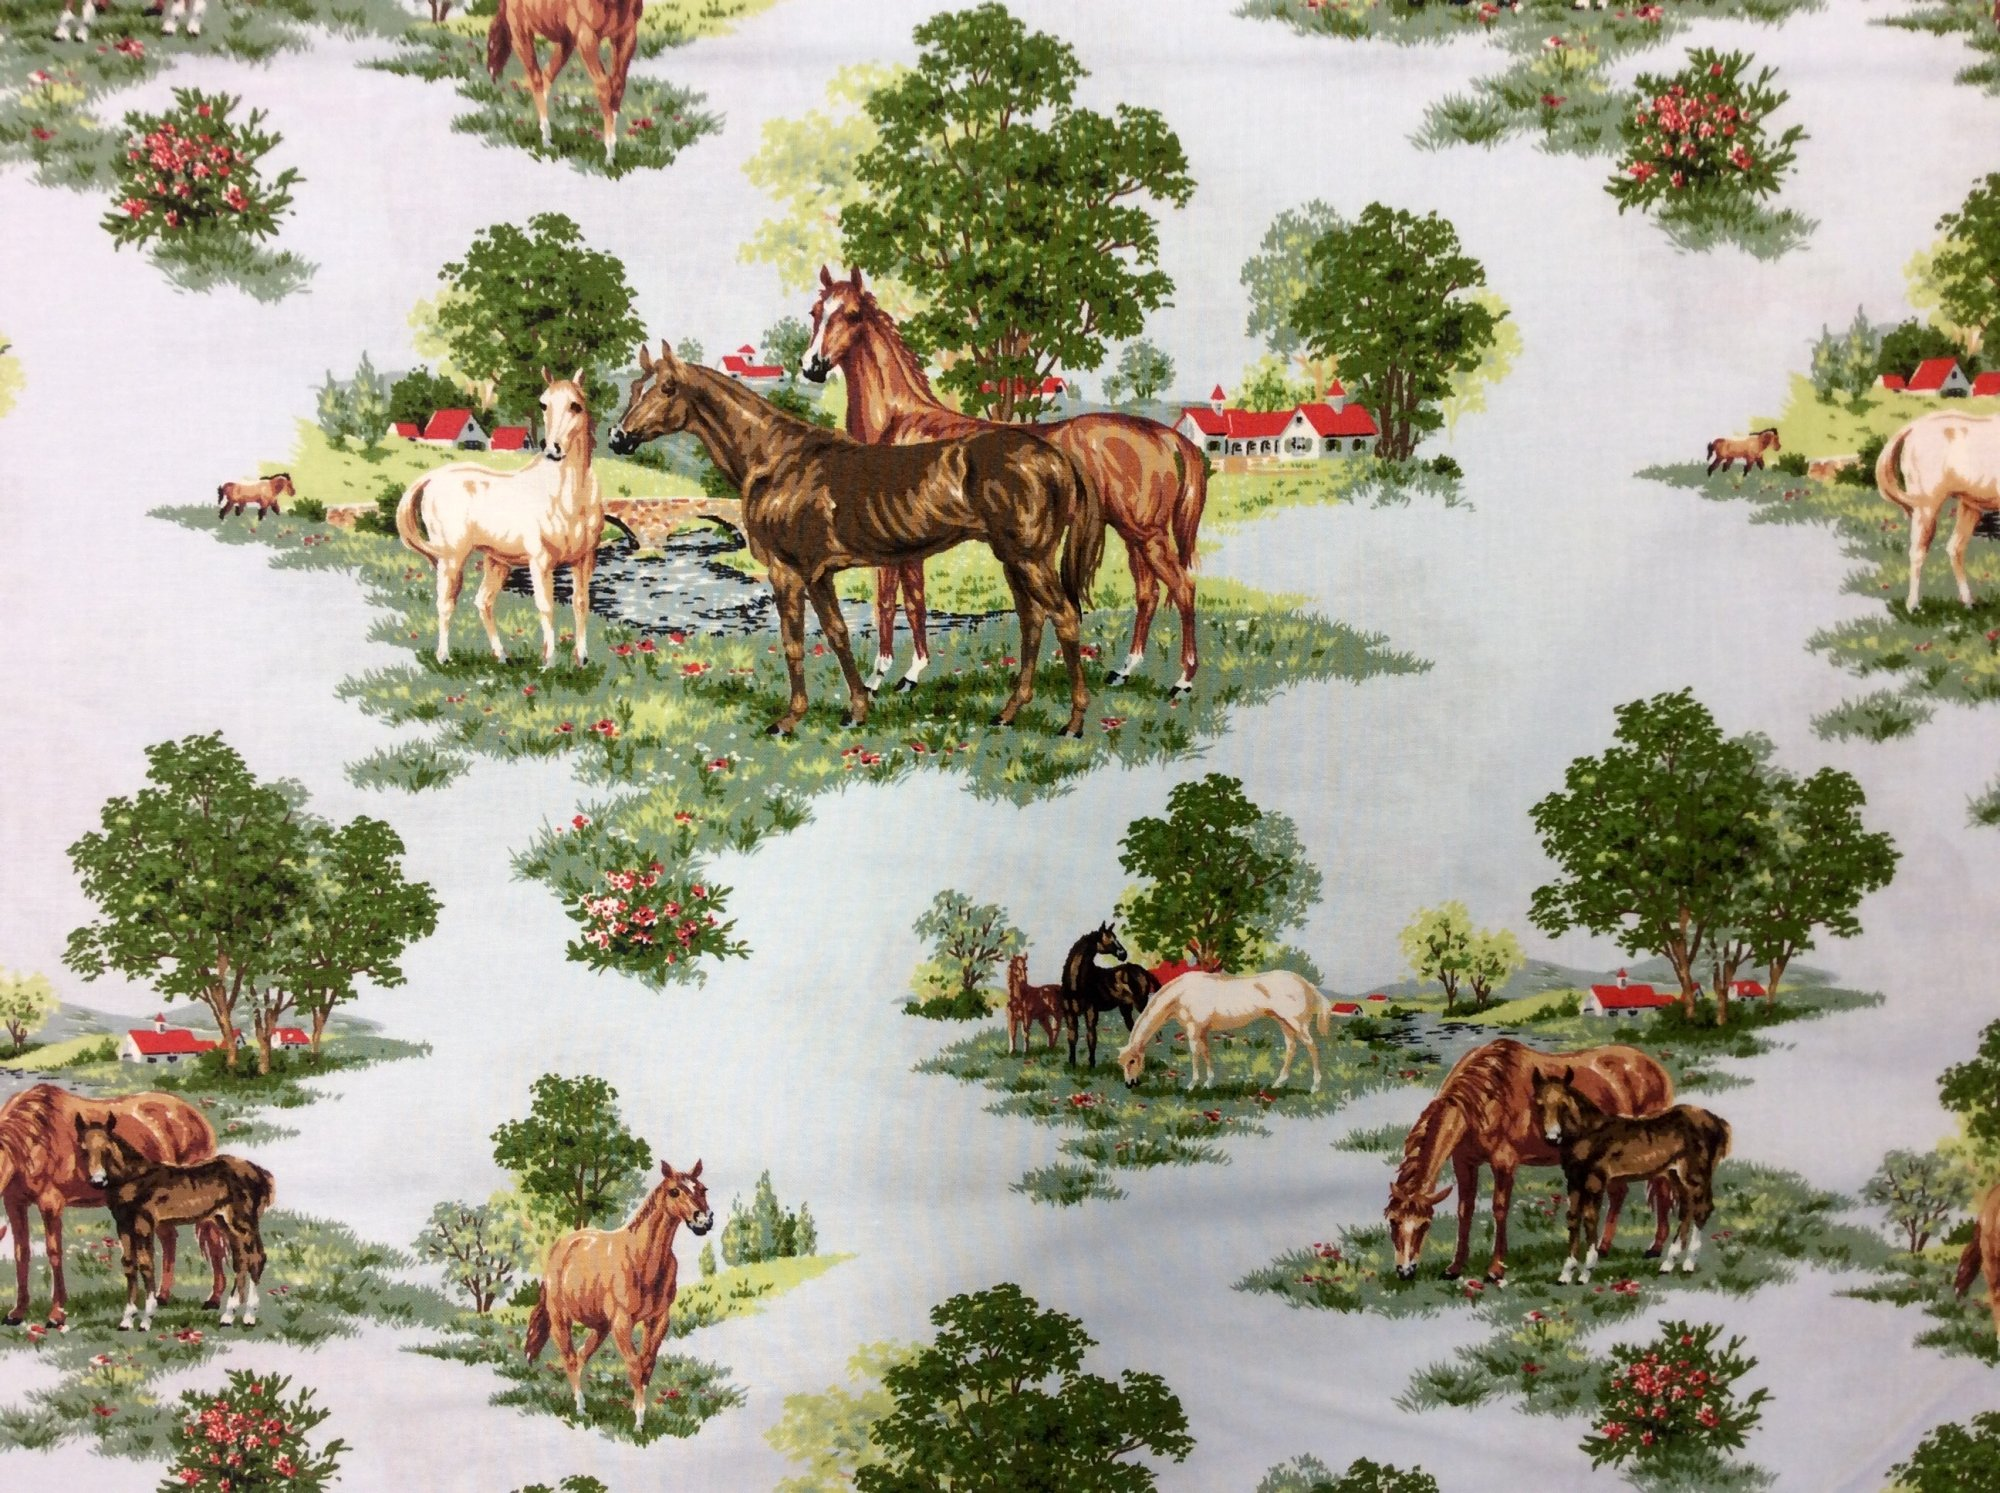 Pure Bred Horses Pasture Farm Thoroughbred Racing Kentucky Derby Preakness Belmont Cotton Quilt Fabric MO126